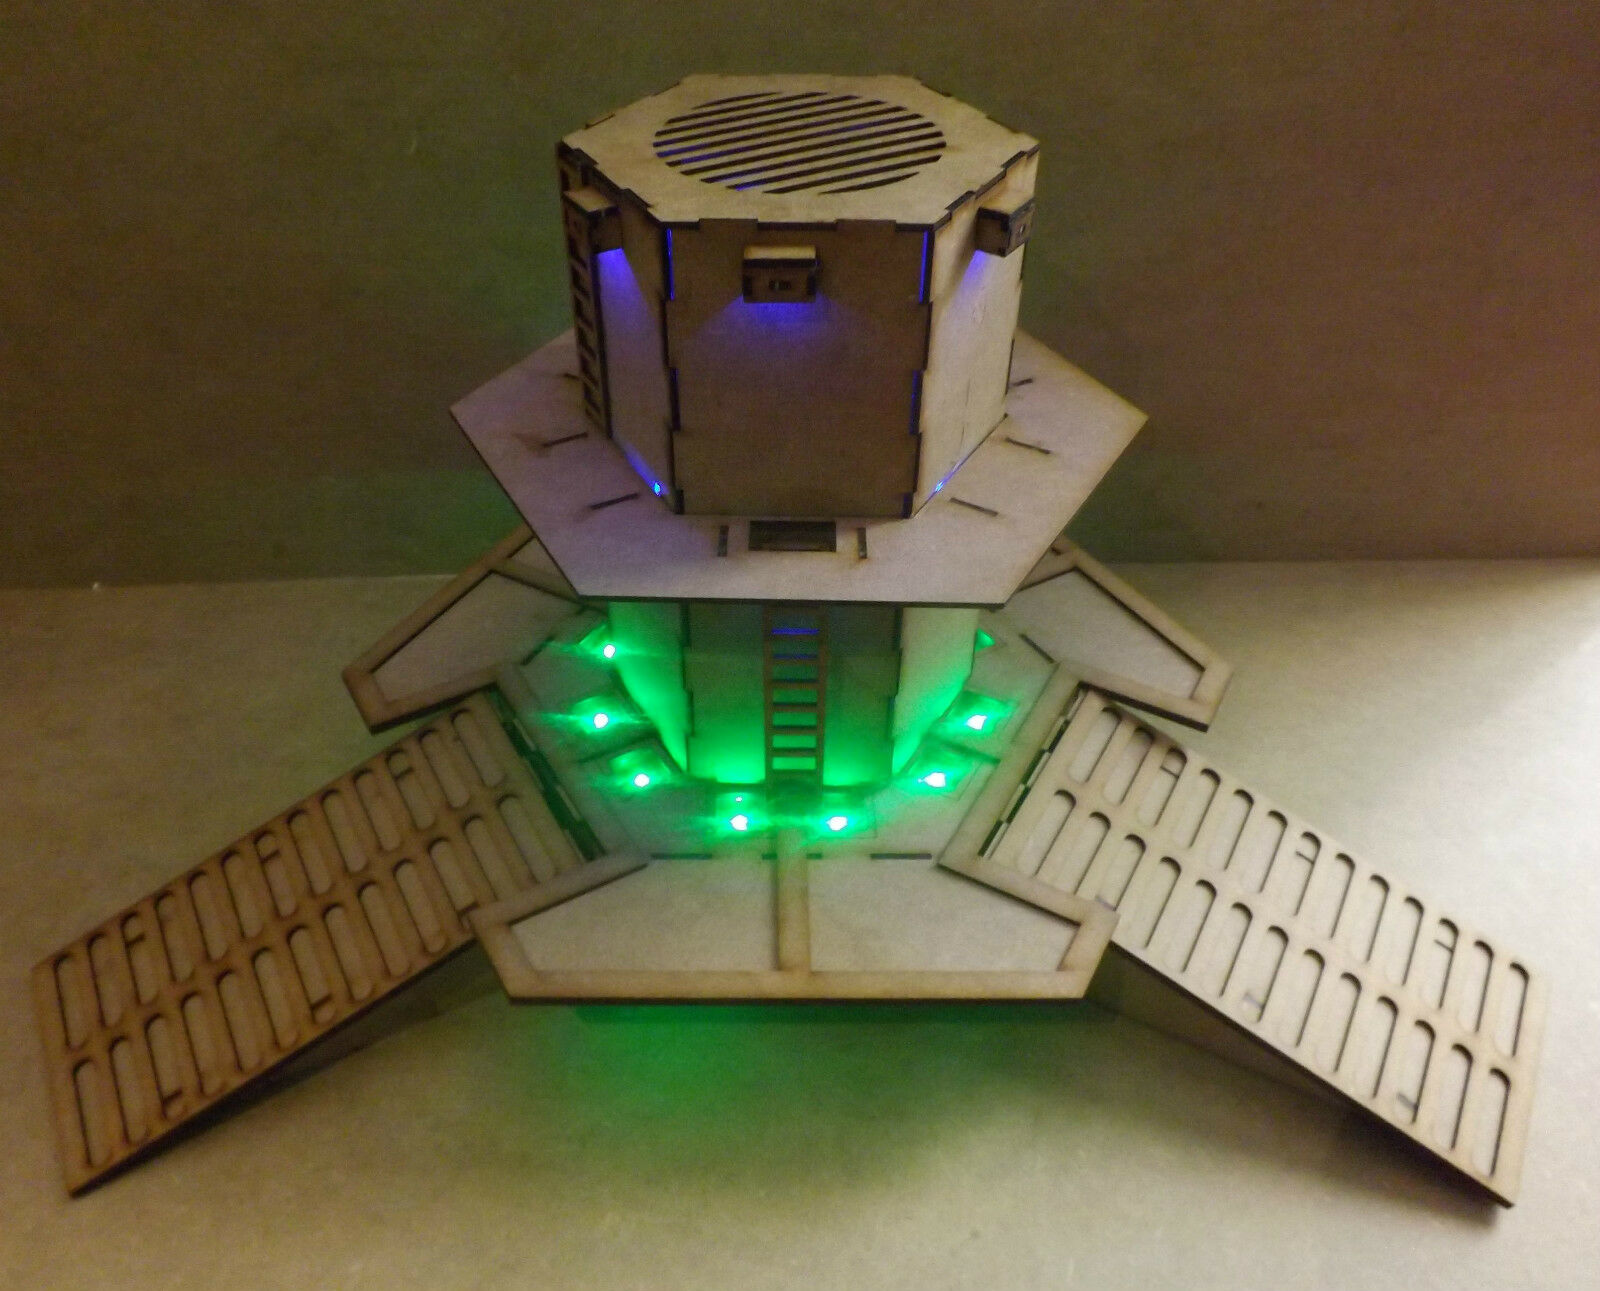 Skypad with tower LED warhammer 40k wargame infinity building terrain scenary